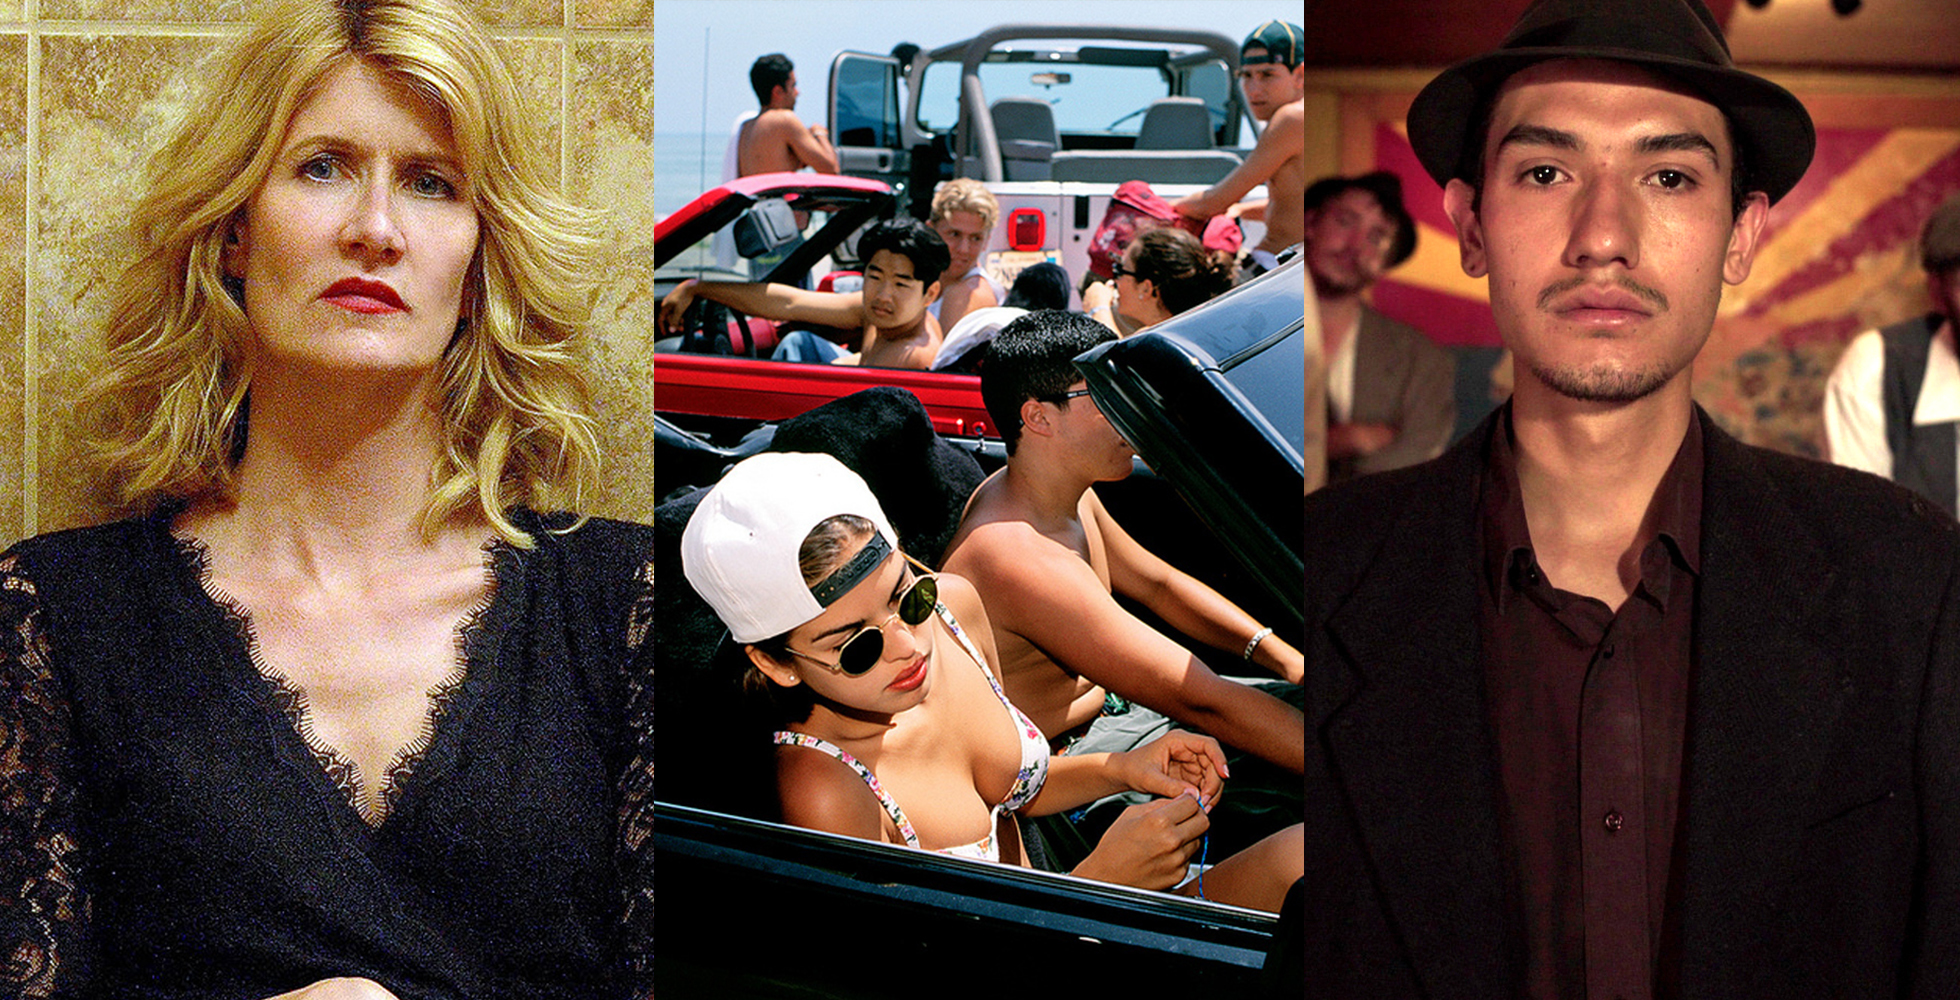 A blonde woman wearing makeup stands against a tiled brown wall. Friends cruise with their cars tops down on a hot summer day. A man wearing a hat with a thin goatee gazes into the camera while his friend, also wearing a hat, looks on from behind.